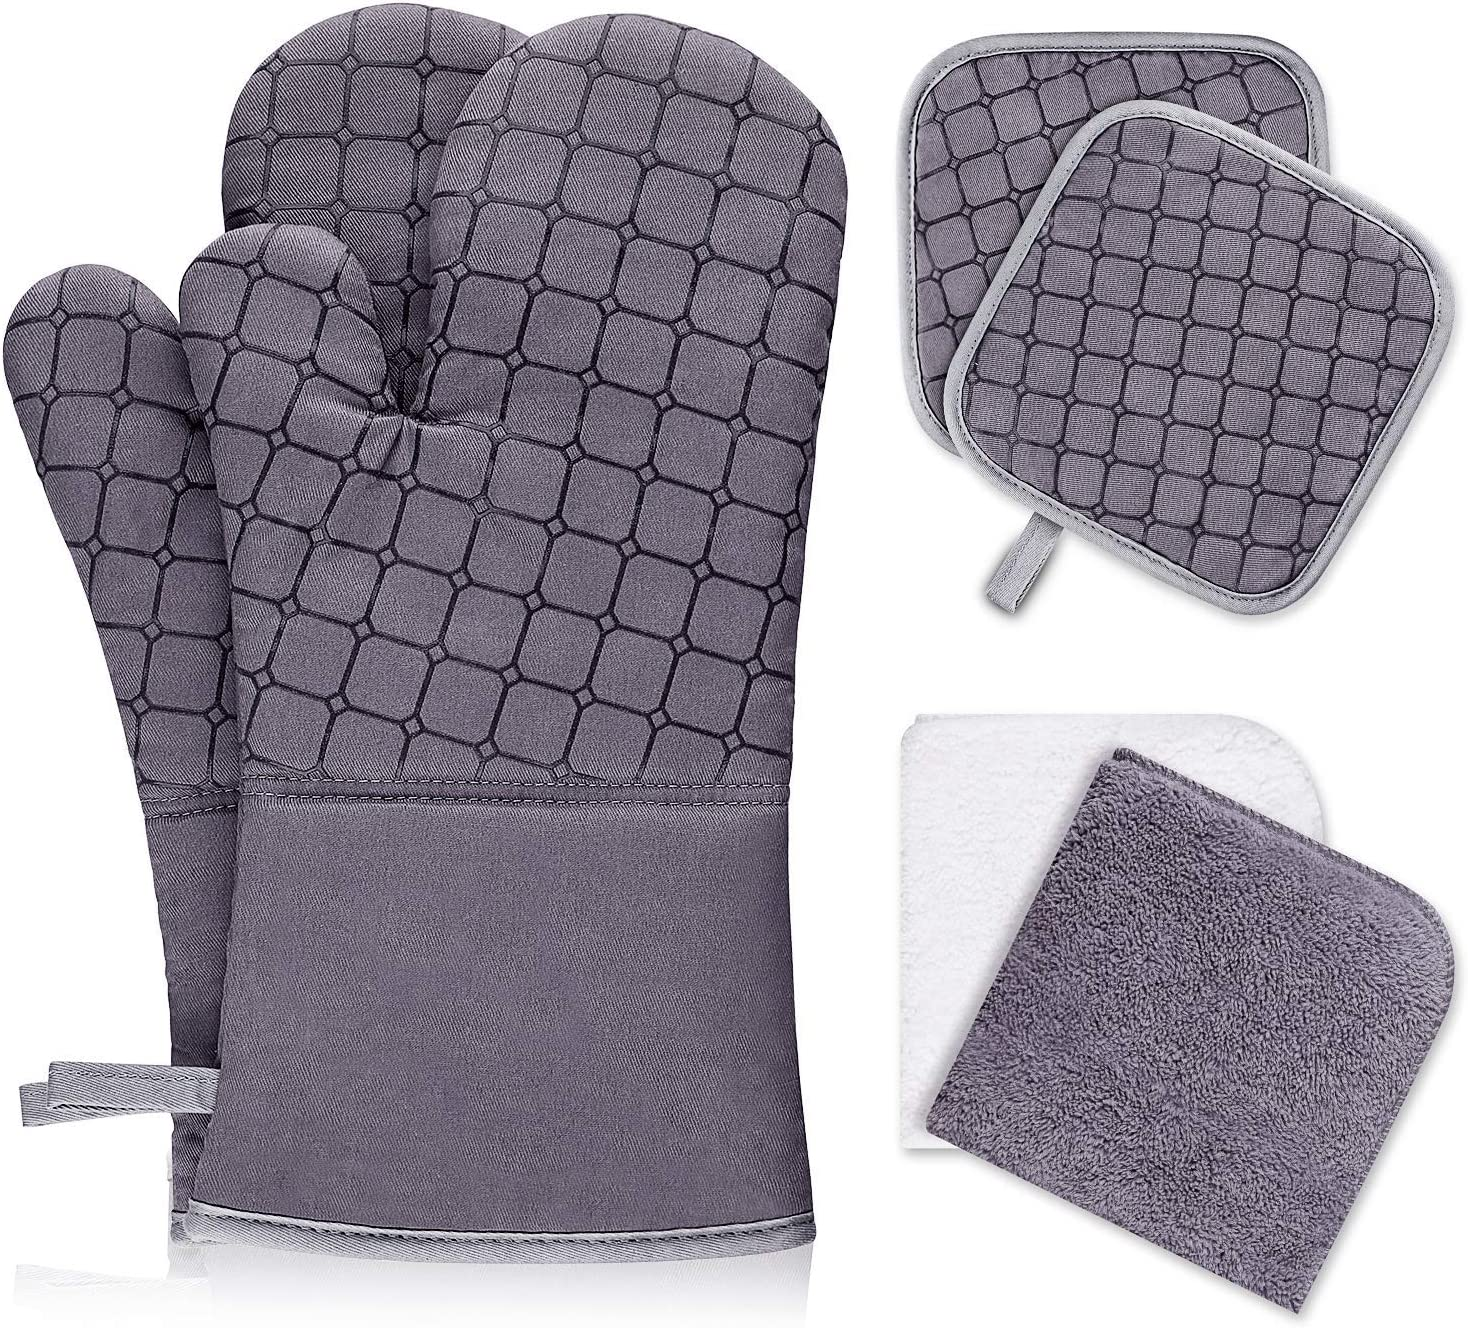 IXO 6Pcs Oven Mitts and Pot Holders, 500℉ Heat Resistant Oven Mitts with Kitchen Towels Soft Cotton Lining and Non-Slip Surface Safe for Baking, Cooking, BBQ (Grey)